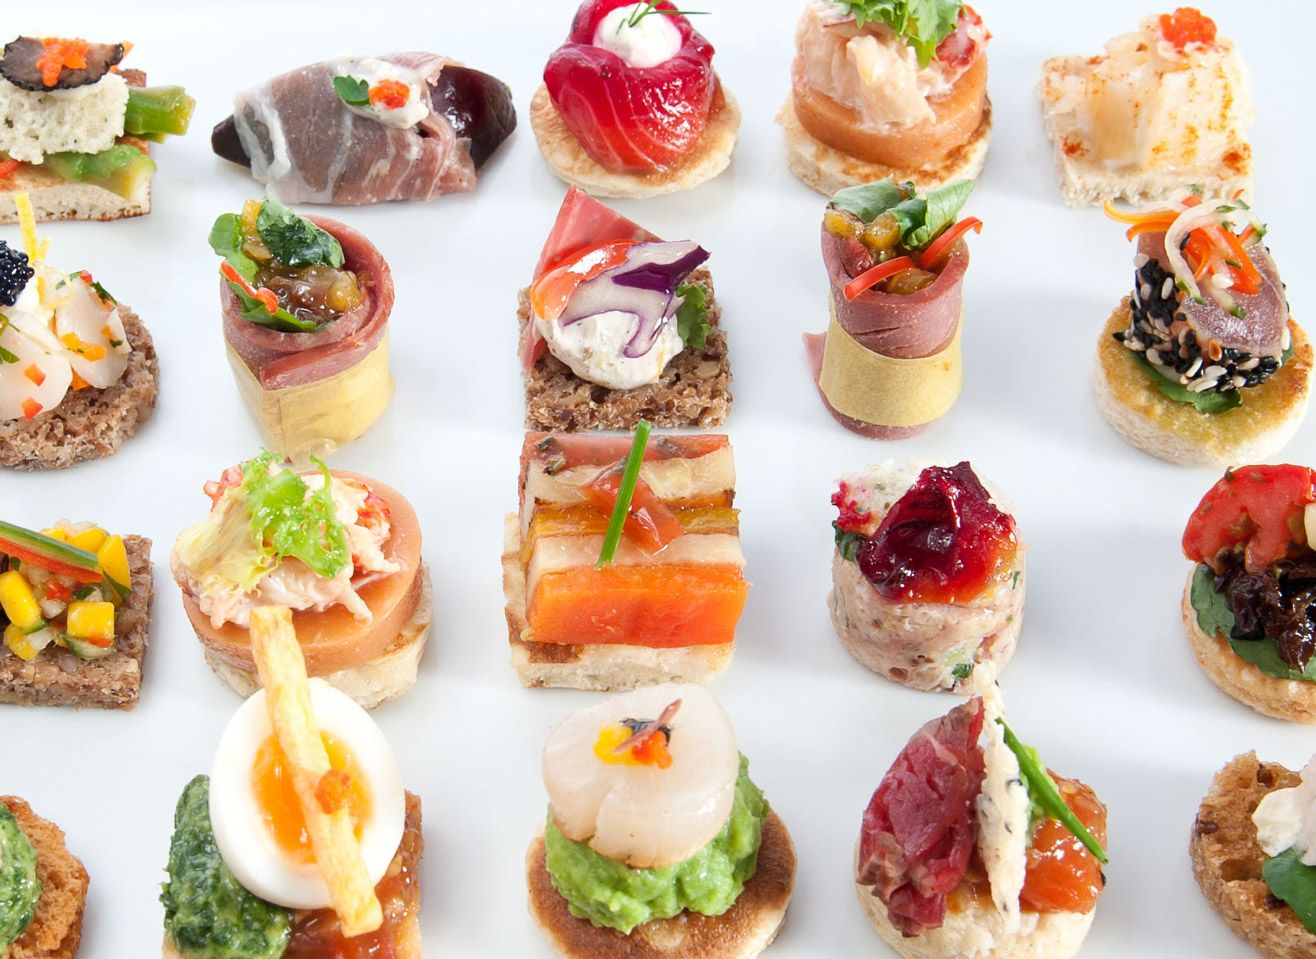 Our canap s canap world catering london canap s main for Party canape ideas